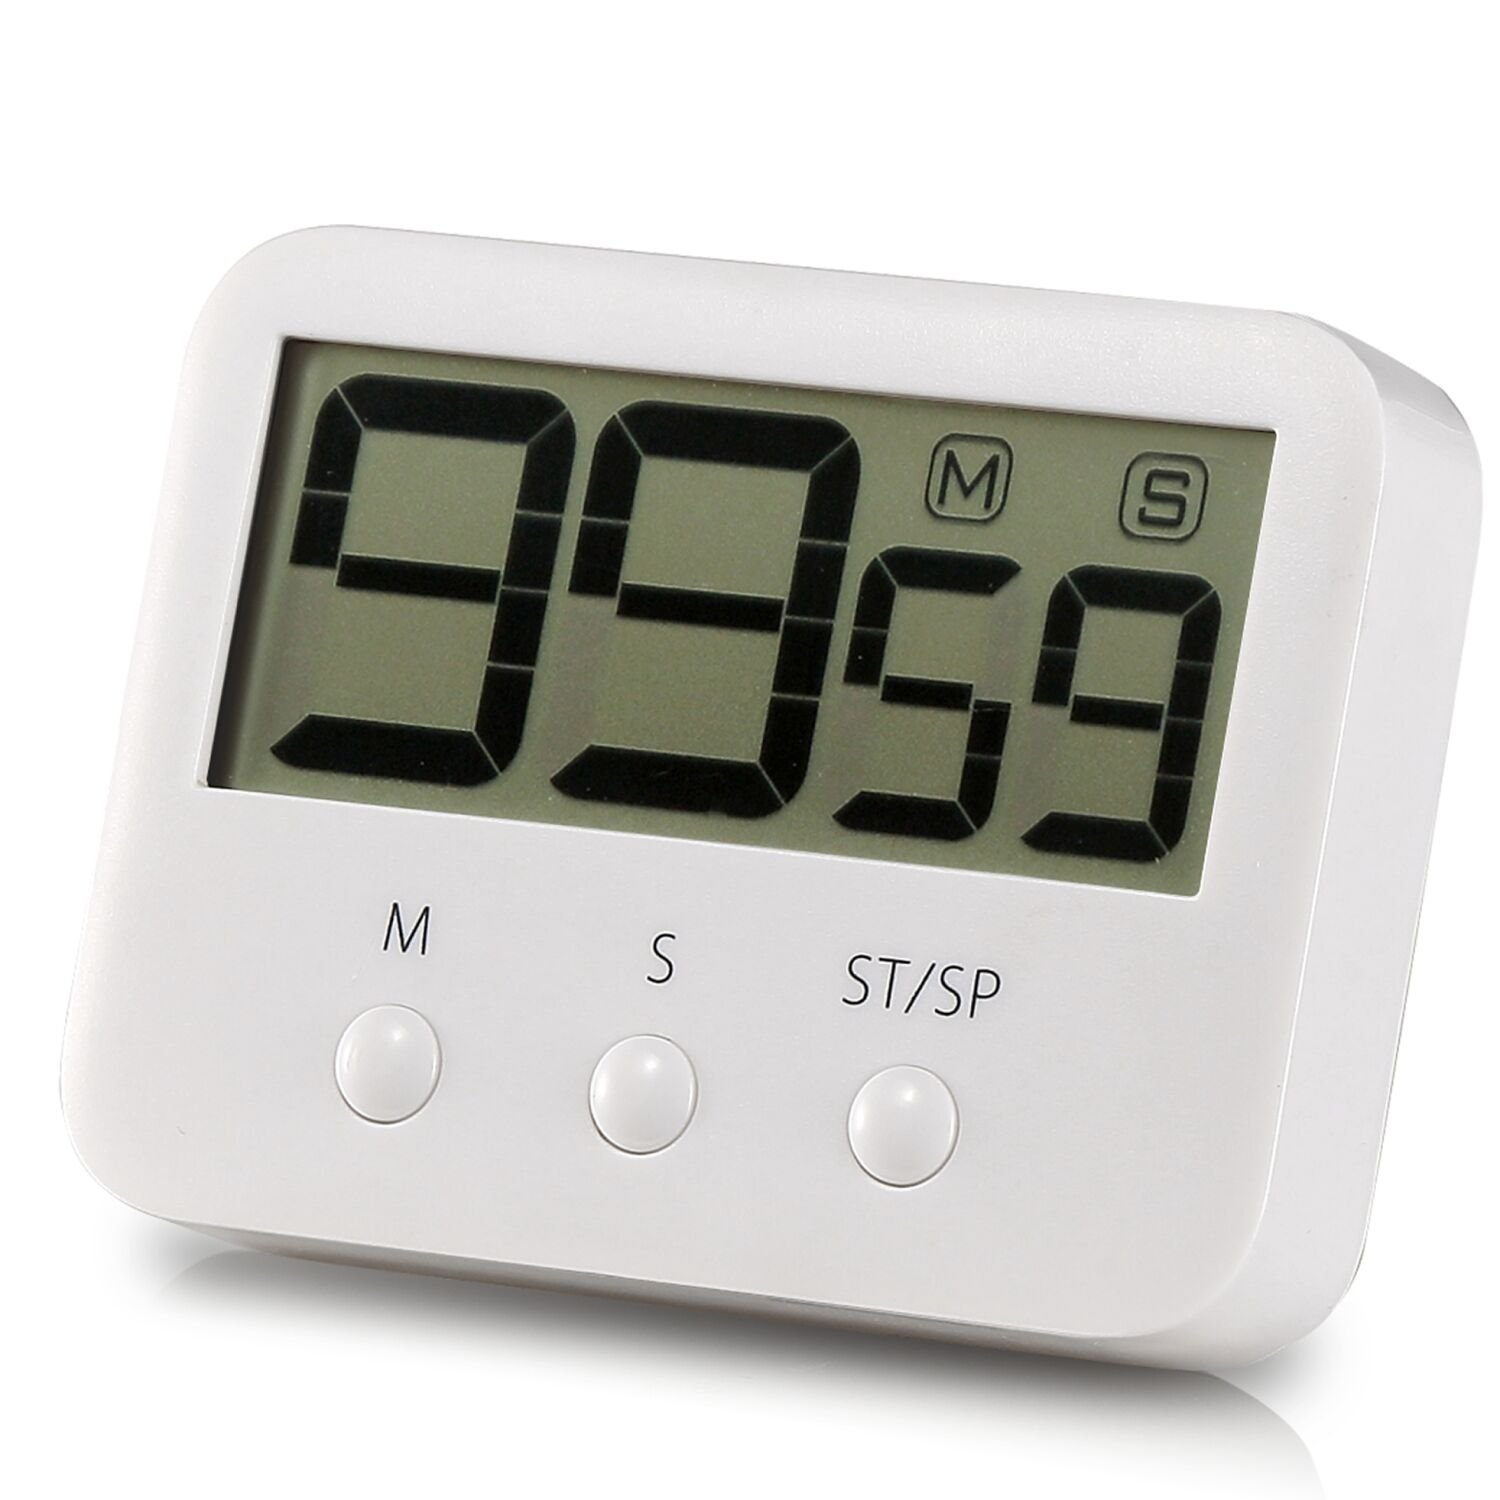 cd display digital cooking kitchen timer countdown up clock loud